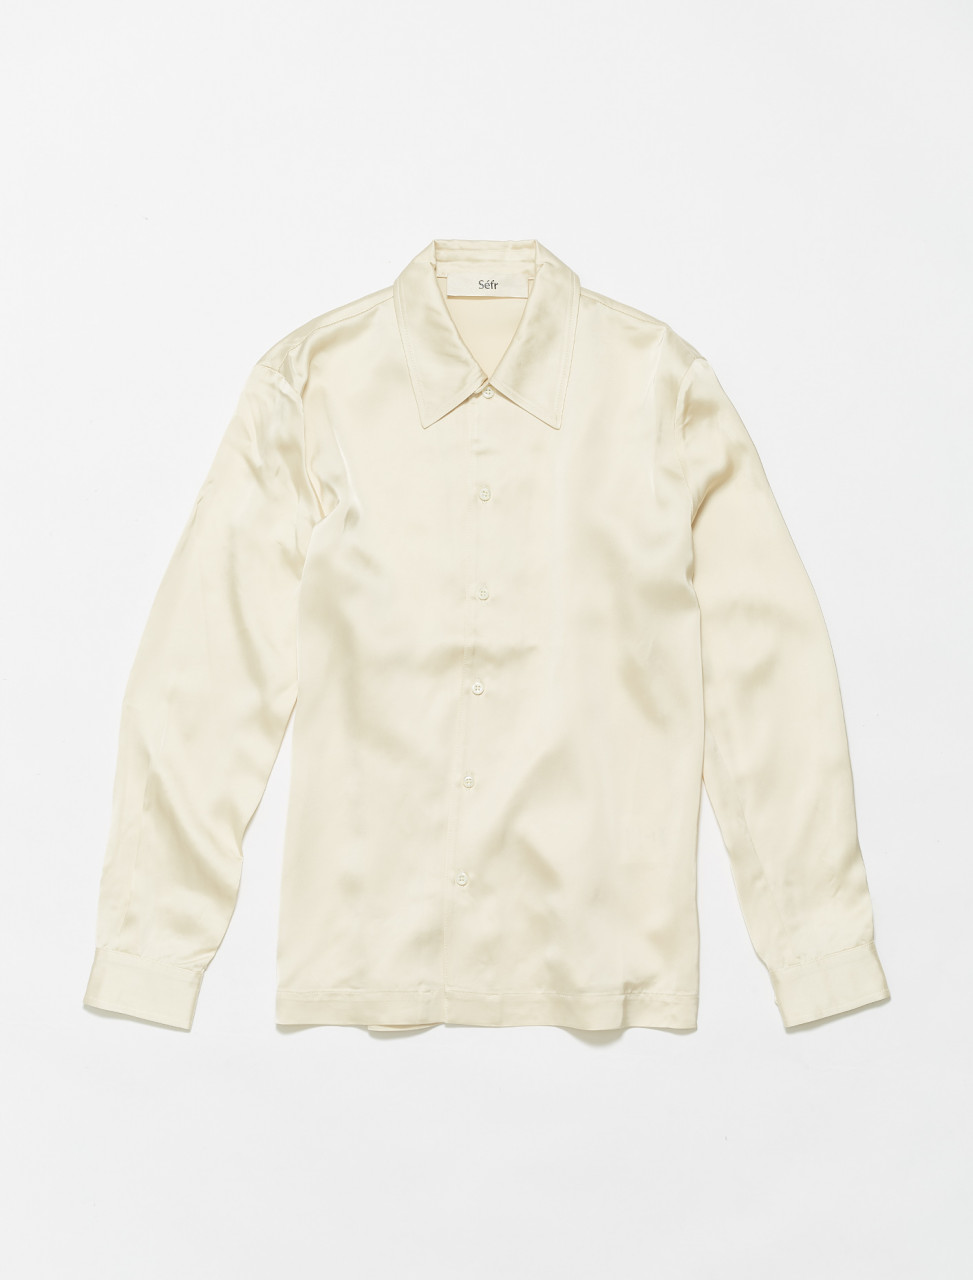 RS-GW SEFR RIPLEY SHIRT GOLDEN WHITE